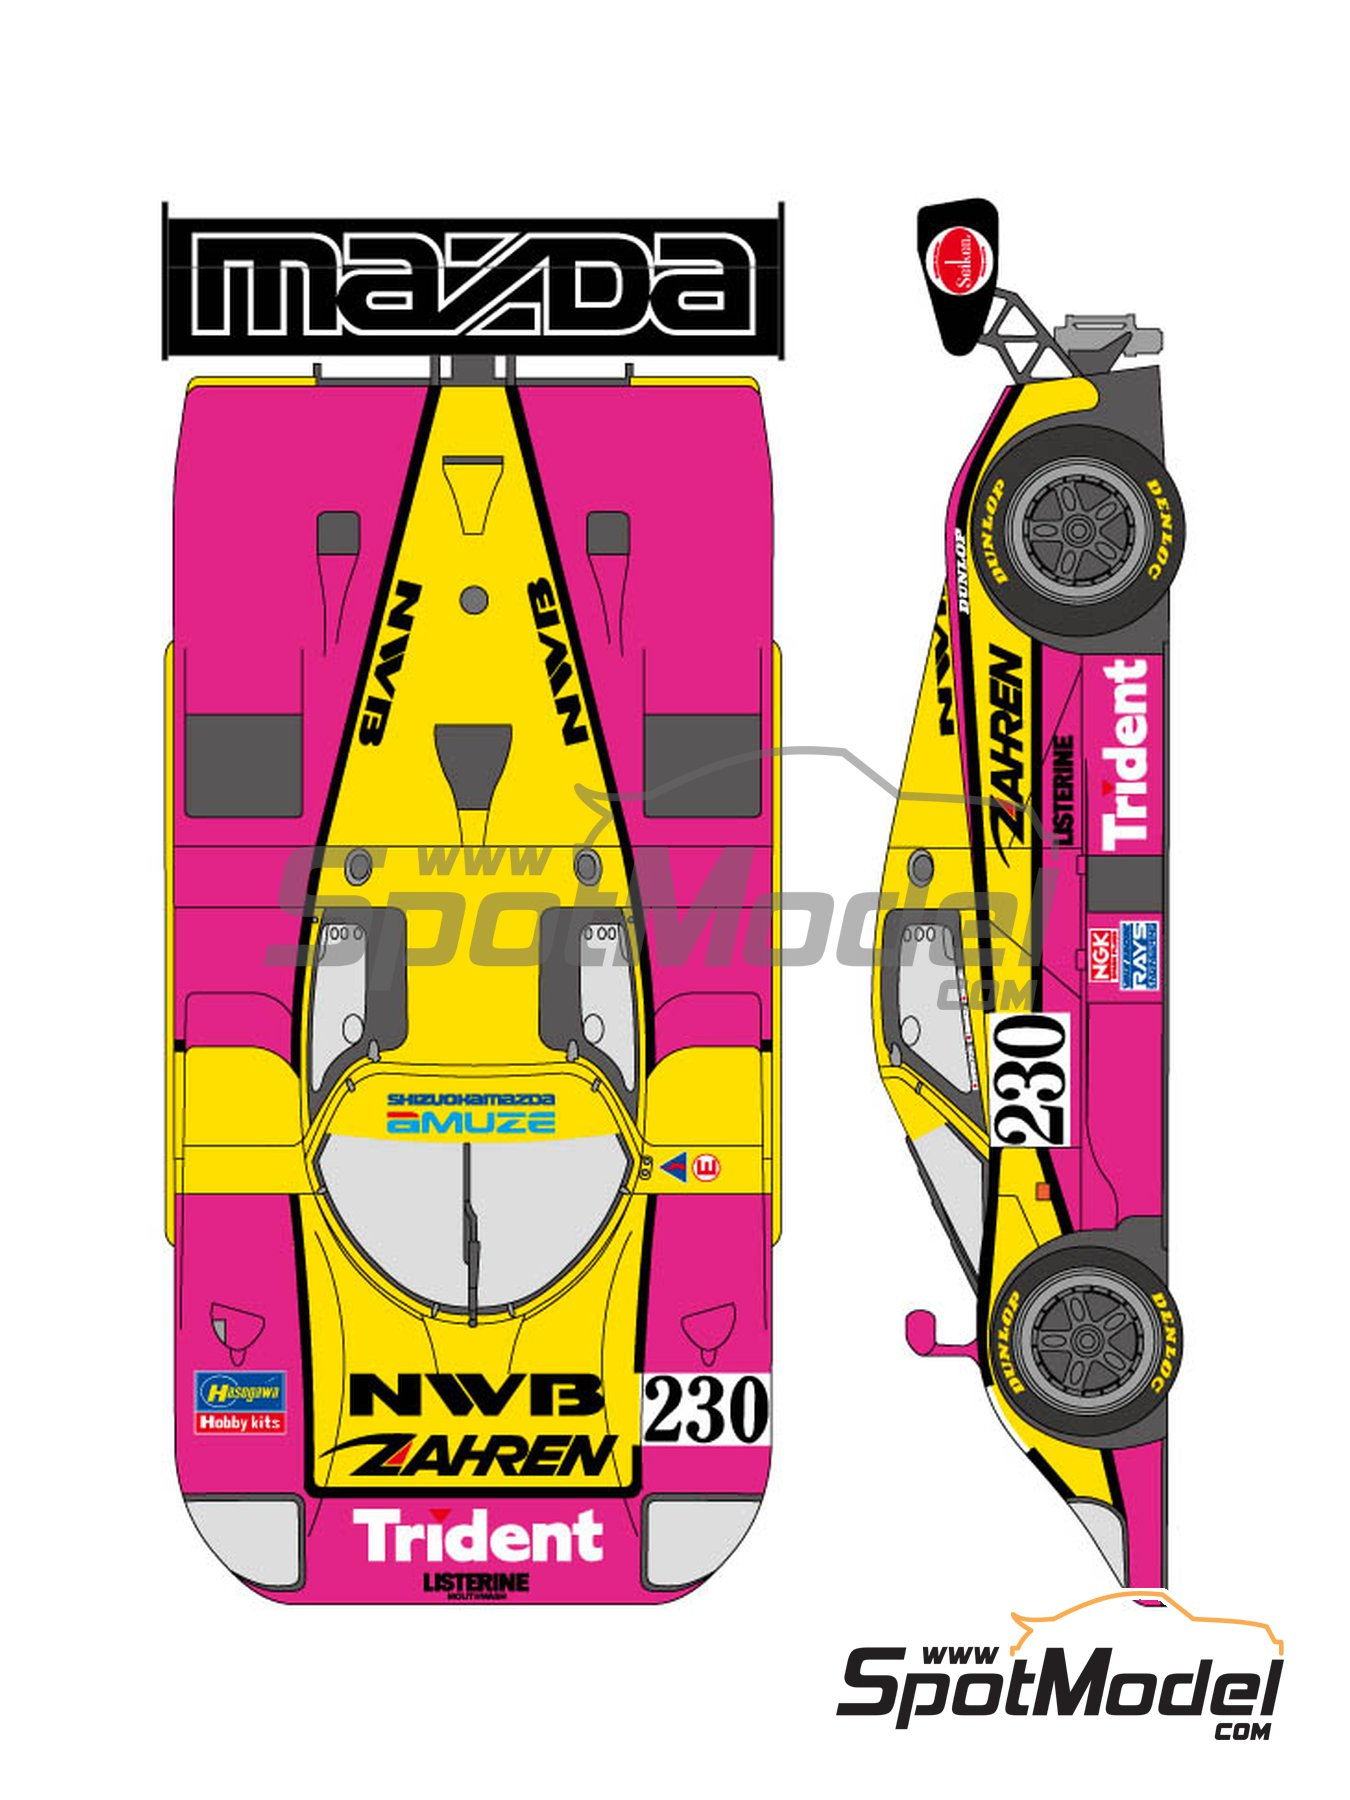 Mazda 767B NWB - 24 Hours Le Mans 1992 | Marking / livery in 1/24 scale manufactured by Shunko Models (ref. SHK-D306) image